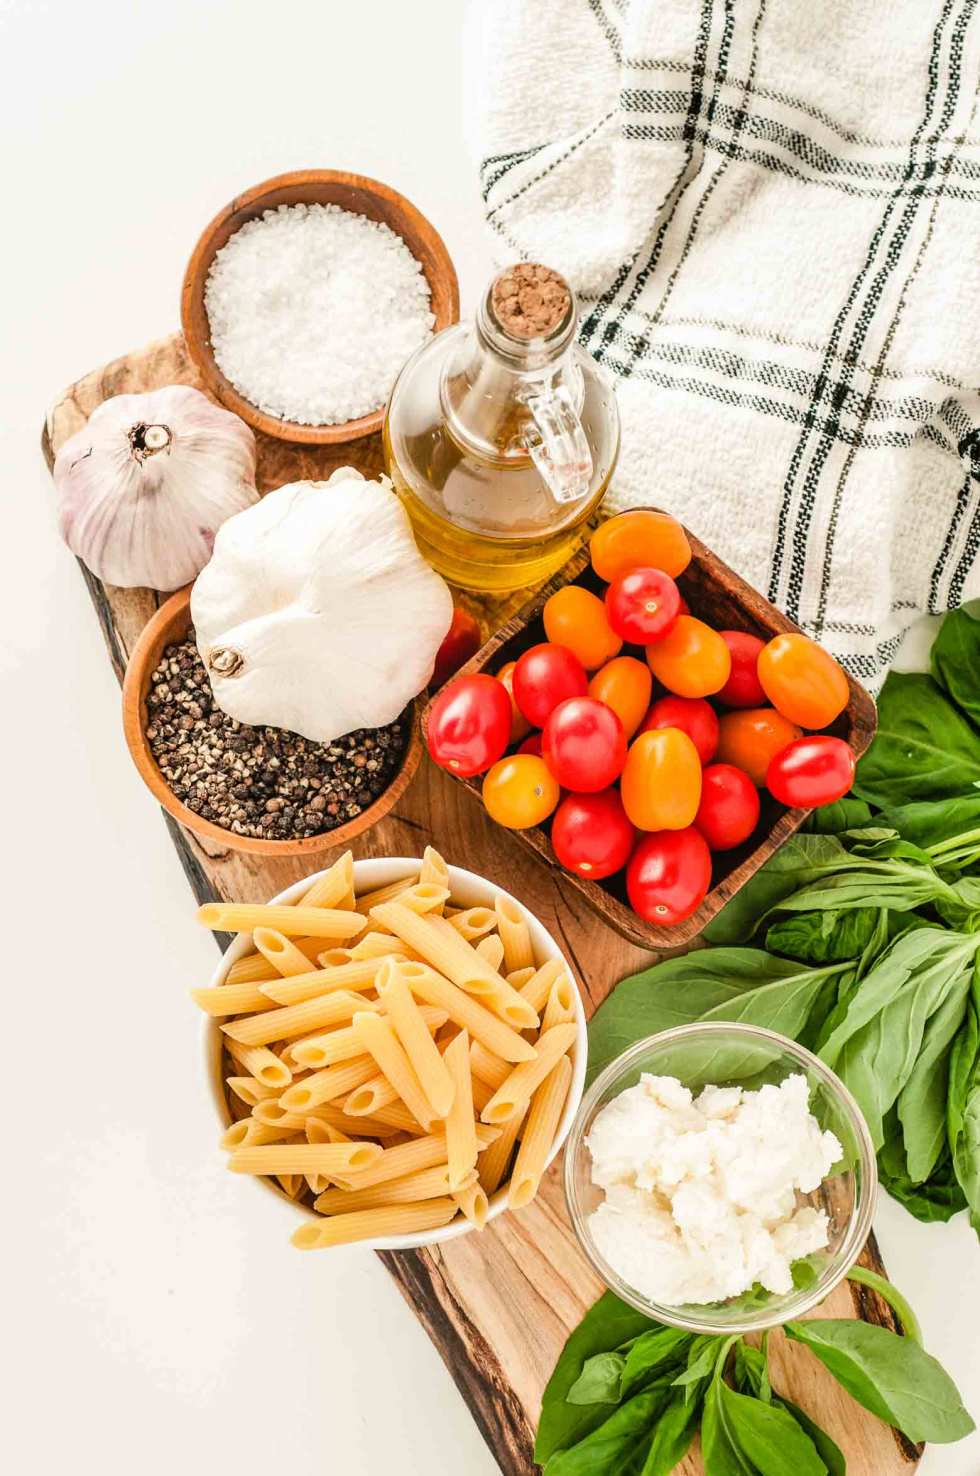 ingredients needed for a basic tomato basil sauce include garlic, salt, pepper, olive oil, noodles, tomatoes, basil and ricotta